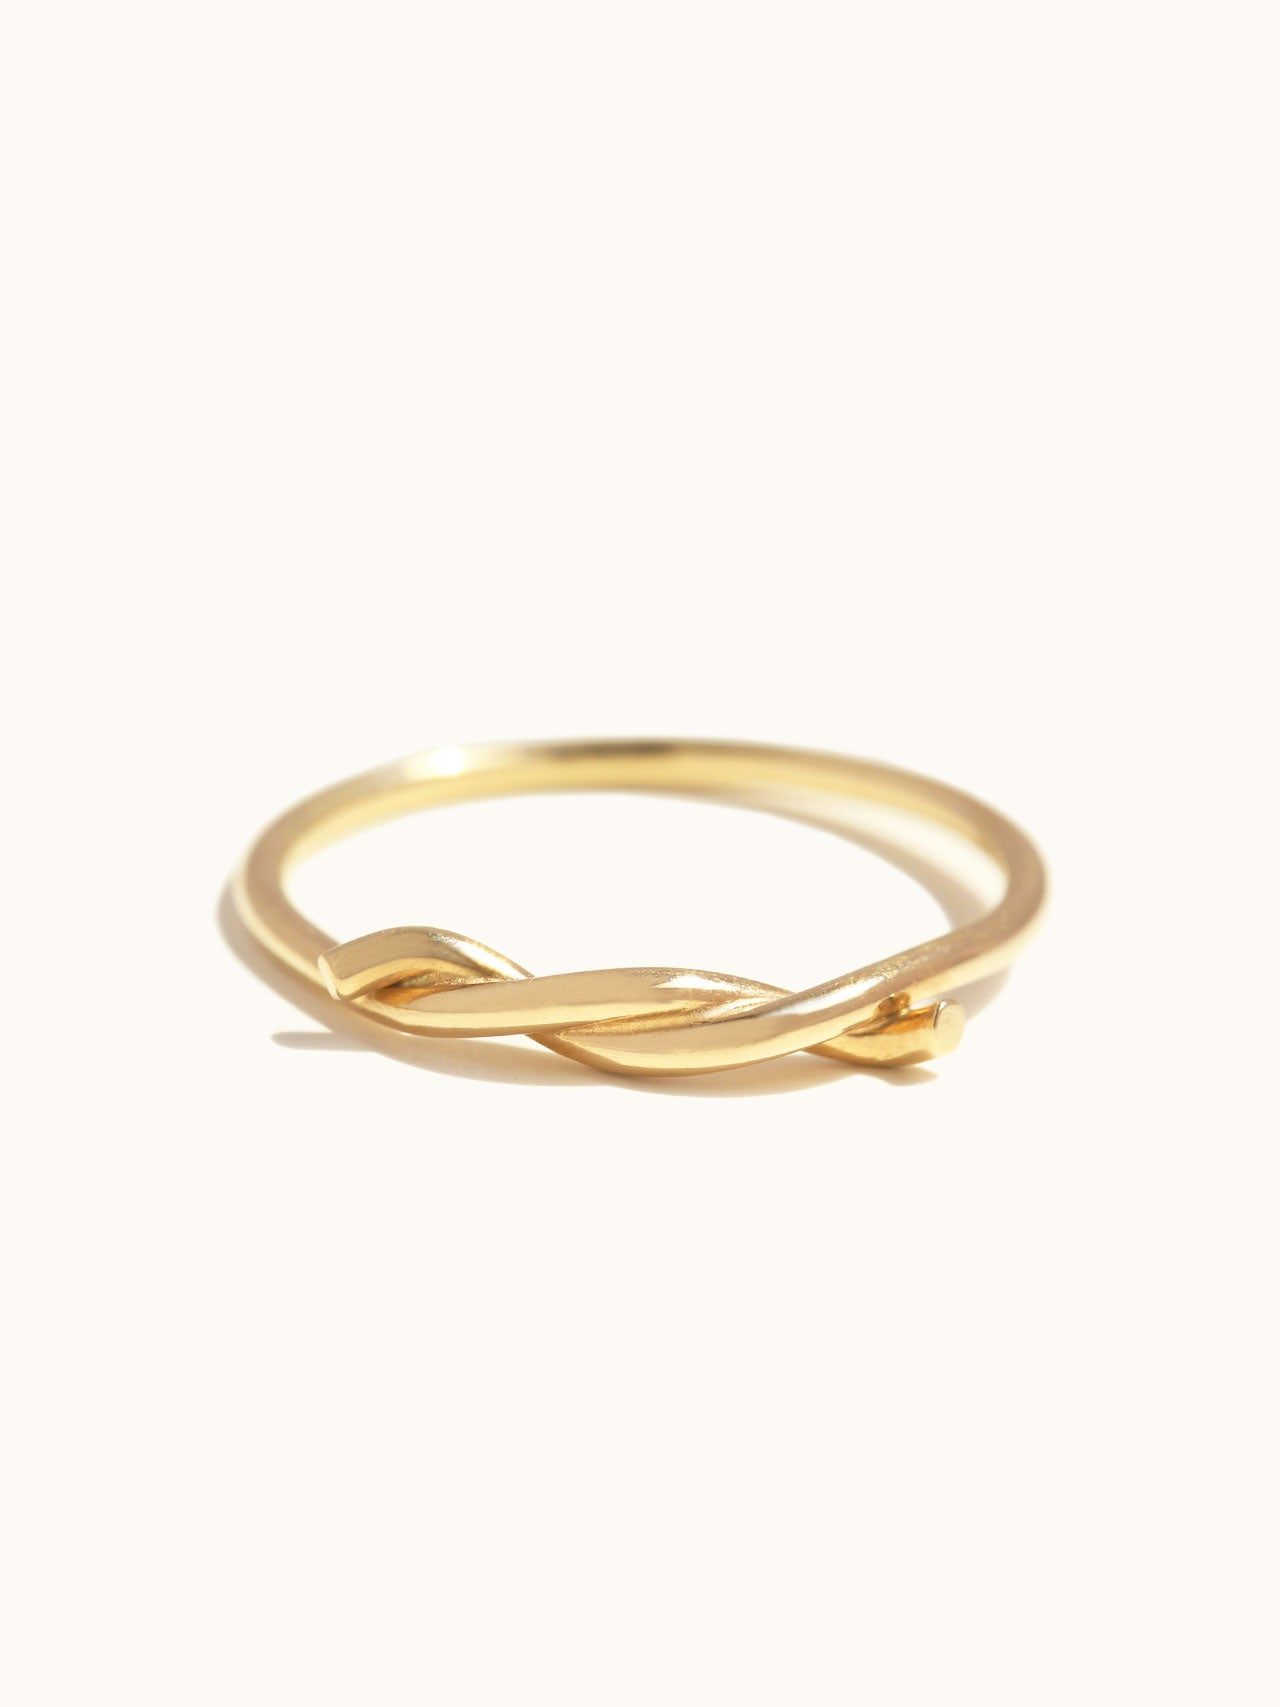 Knotted Thread Ring